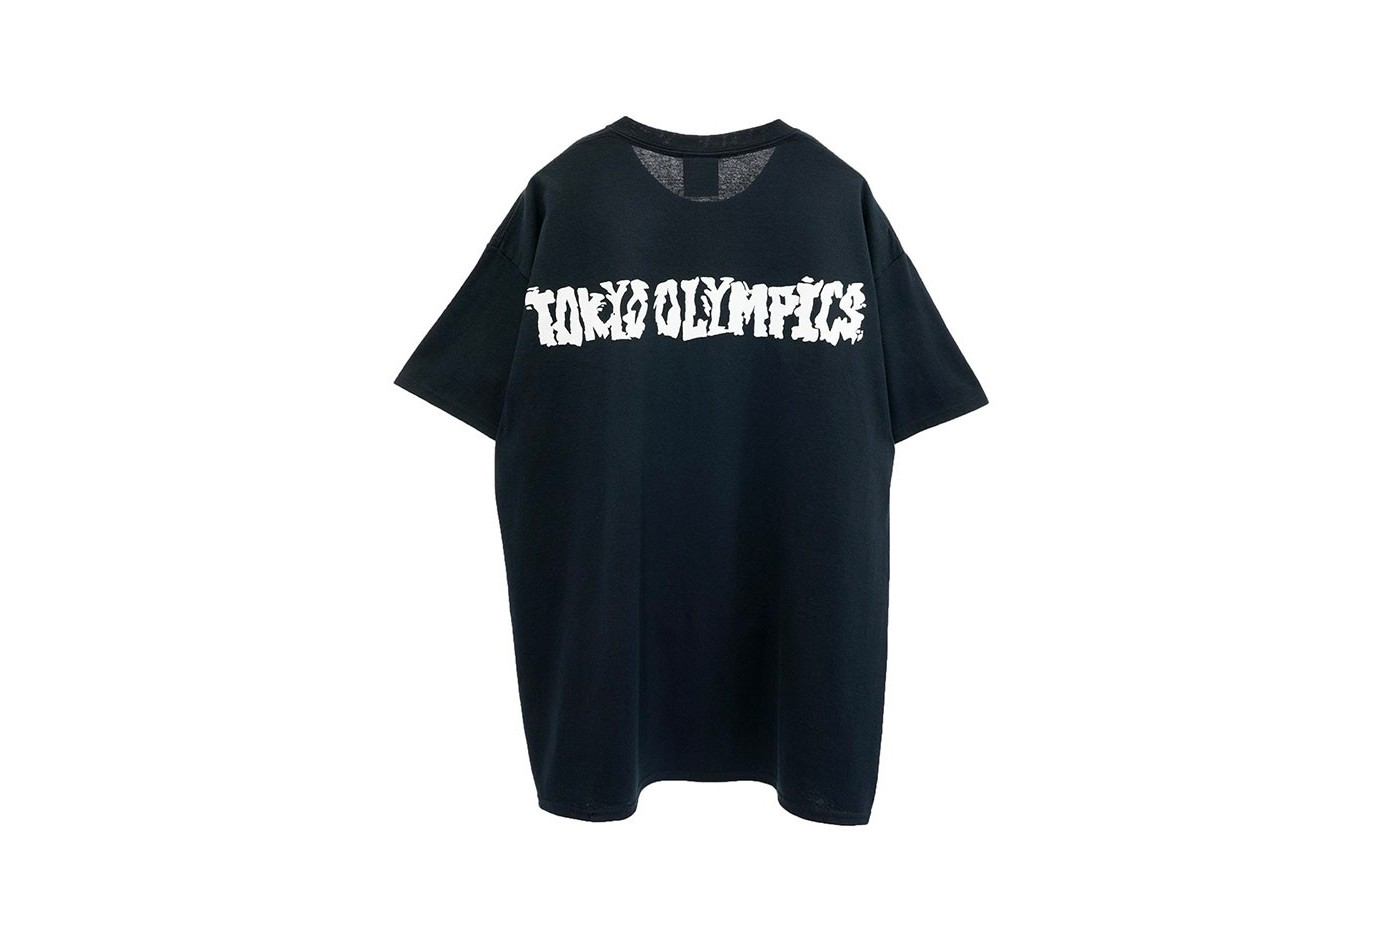 Cali Thornhill DeWitt solo exhibition Tokyo Olympics 2020 capsule menswear streetwear graphic tees t shirts long sleeves gr8 saint Michael